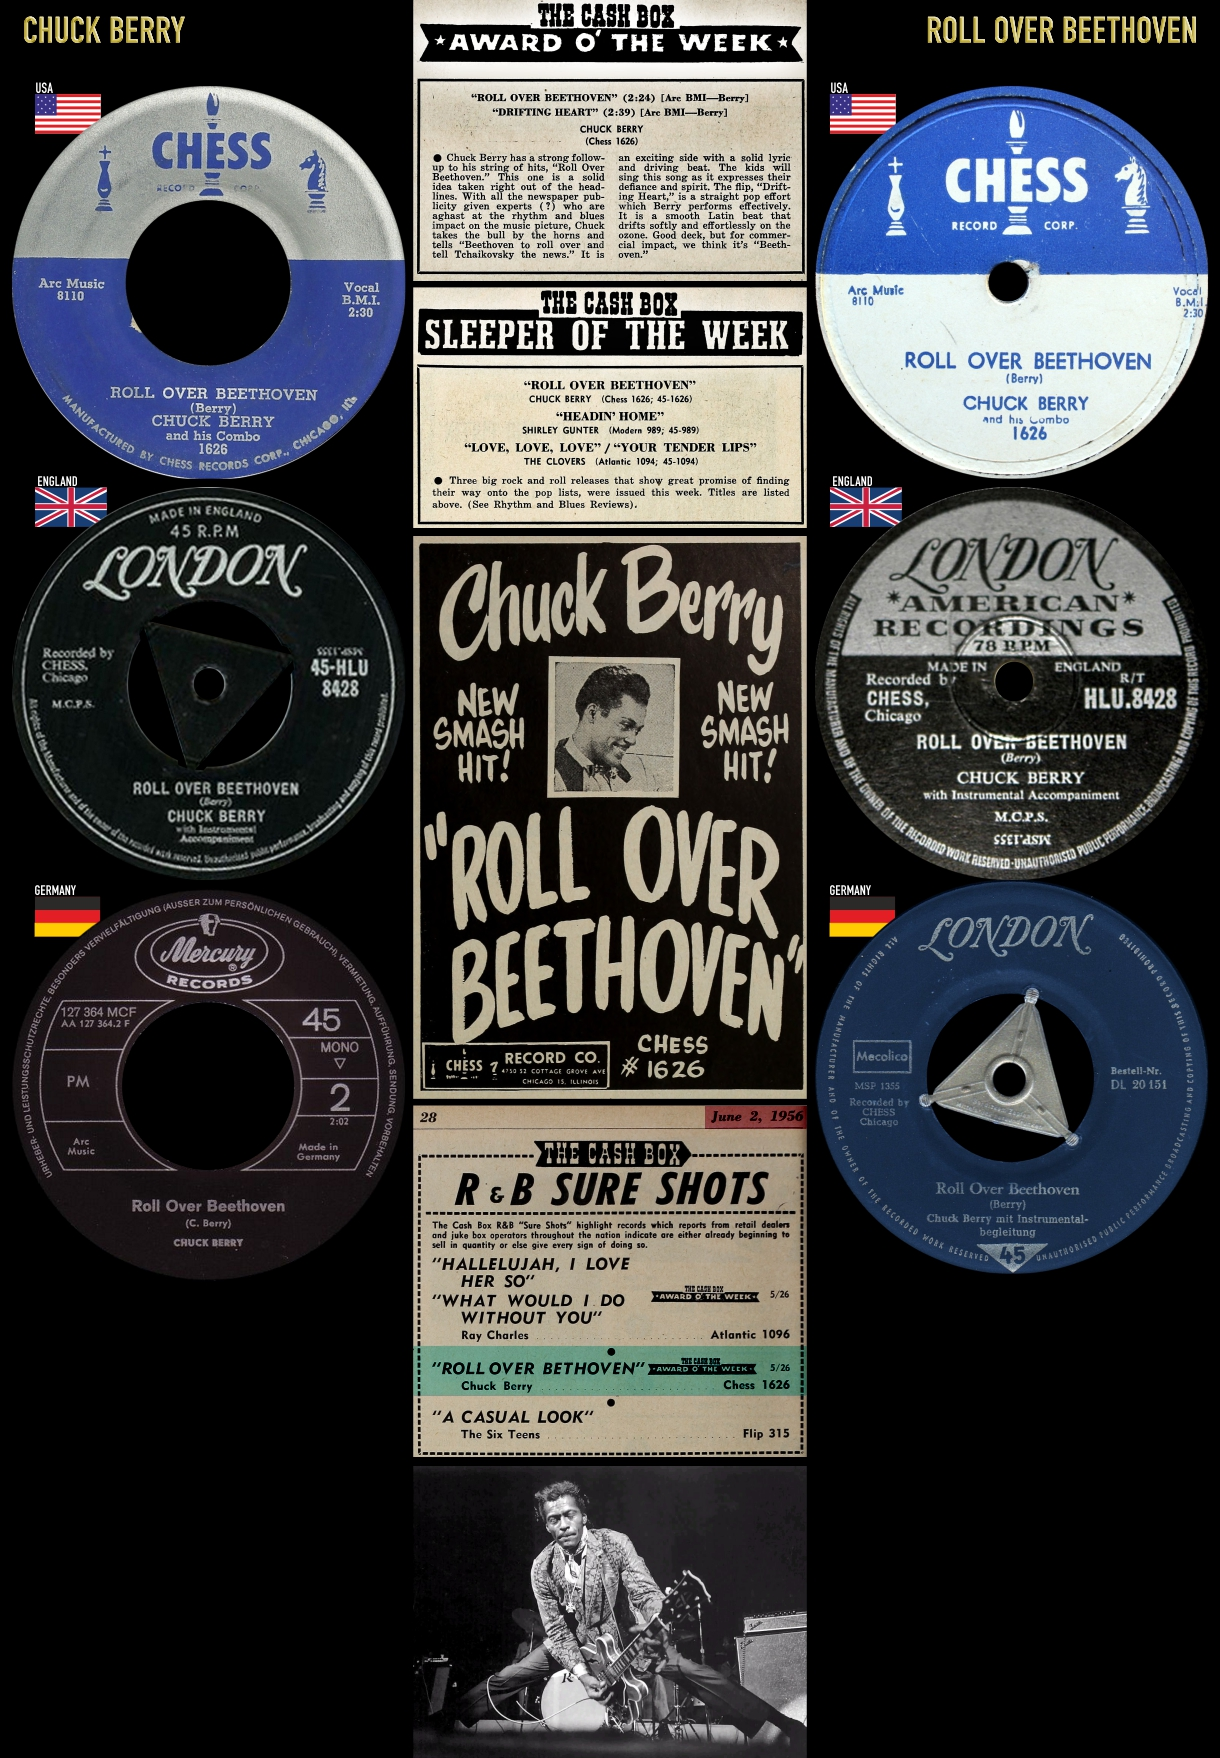 560630_Chuck Berry_Roll Over Beethoven_new